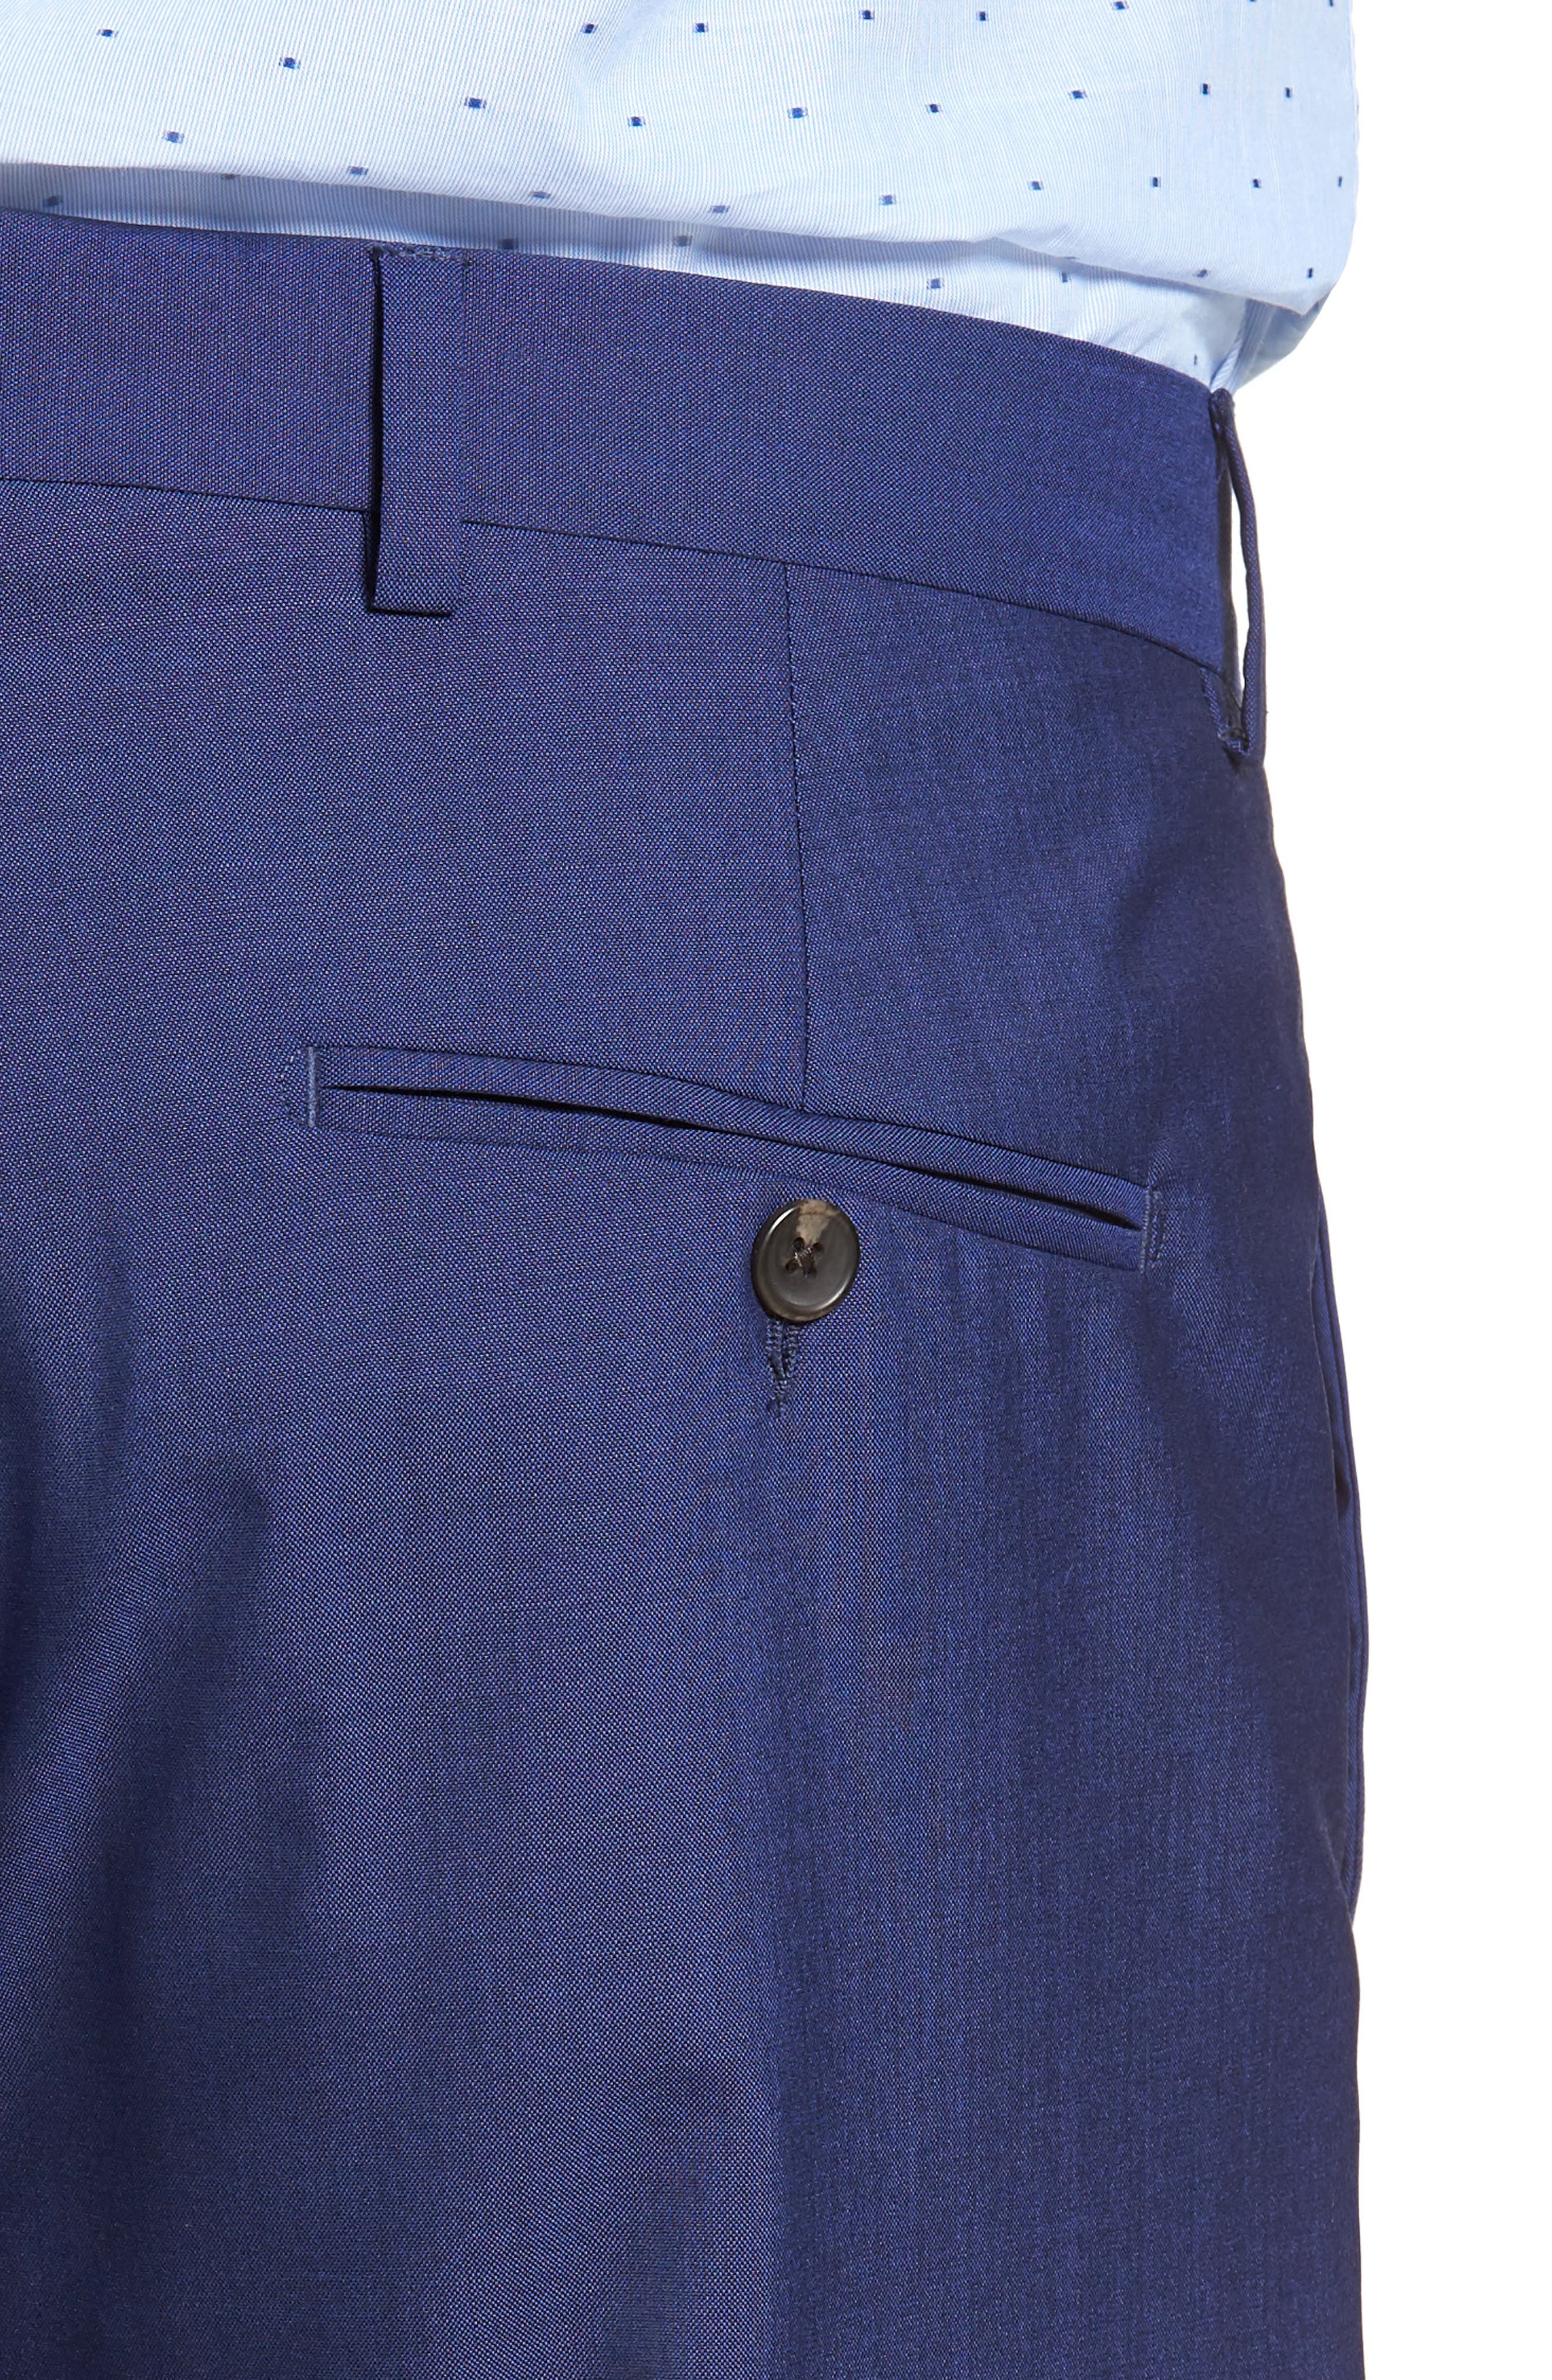 Dagger Flat Front Solid Wool Trousers,                             Alternate thumbnail 4, color,                             High Blue